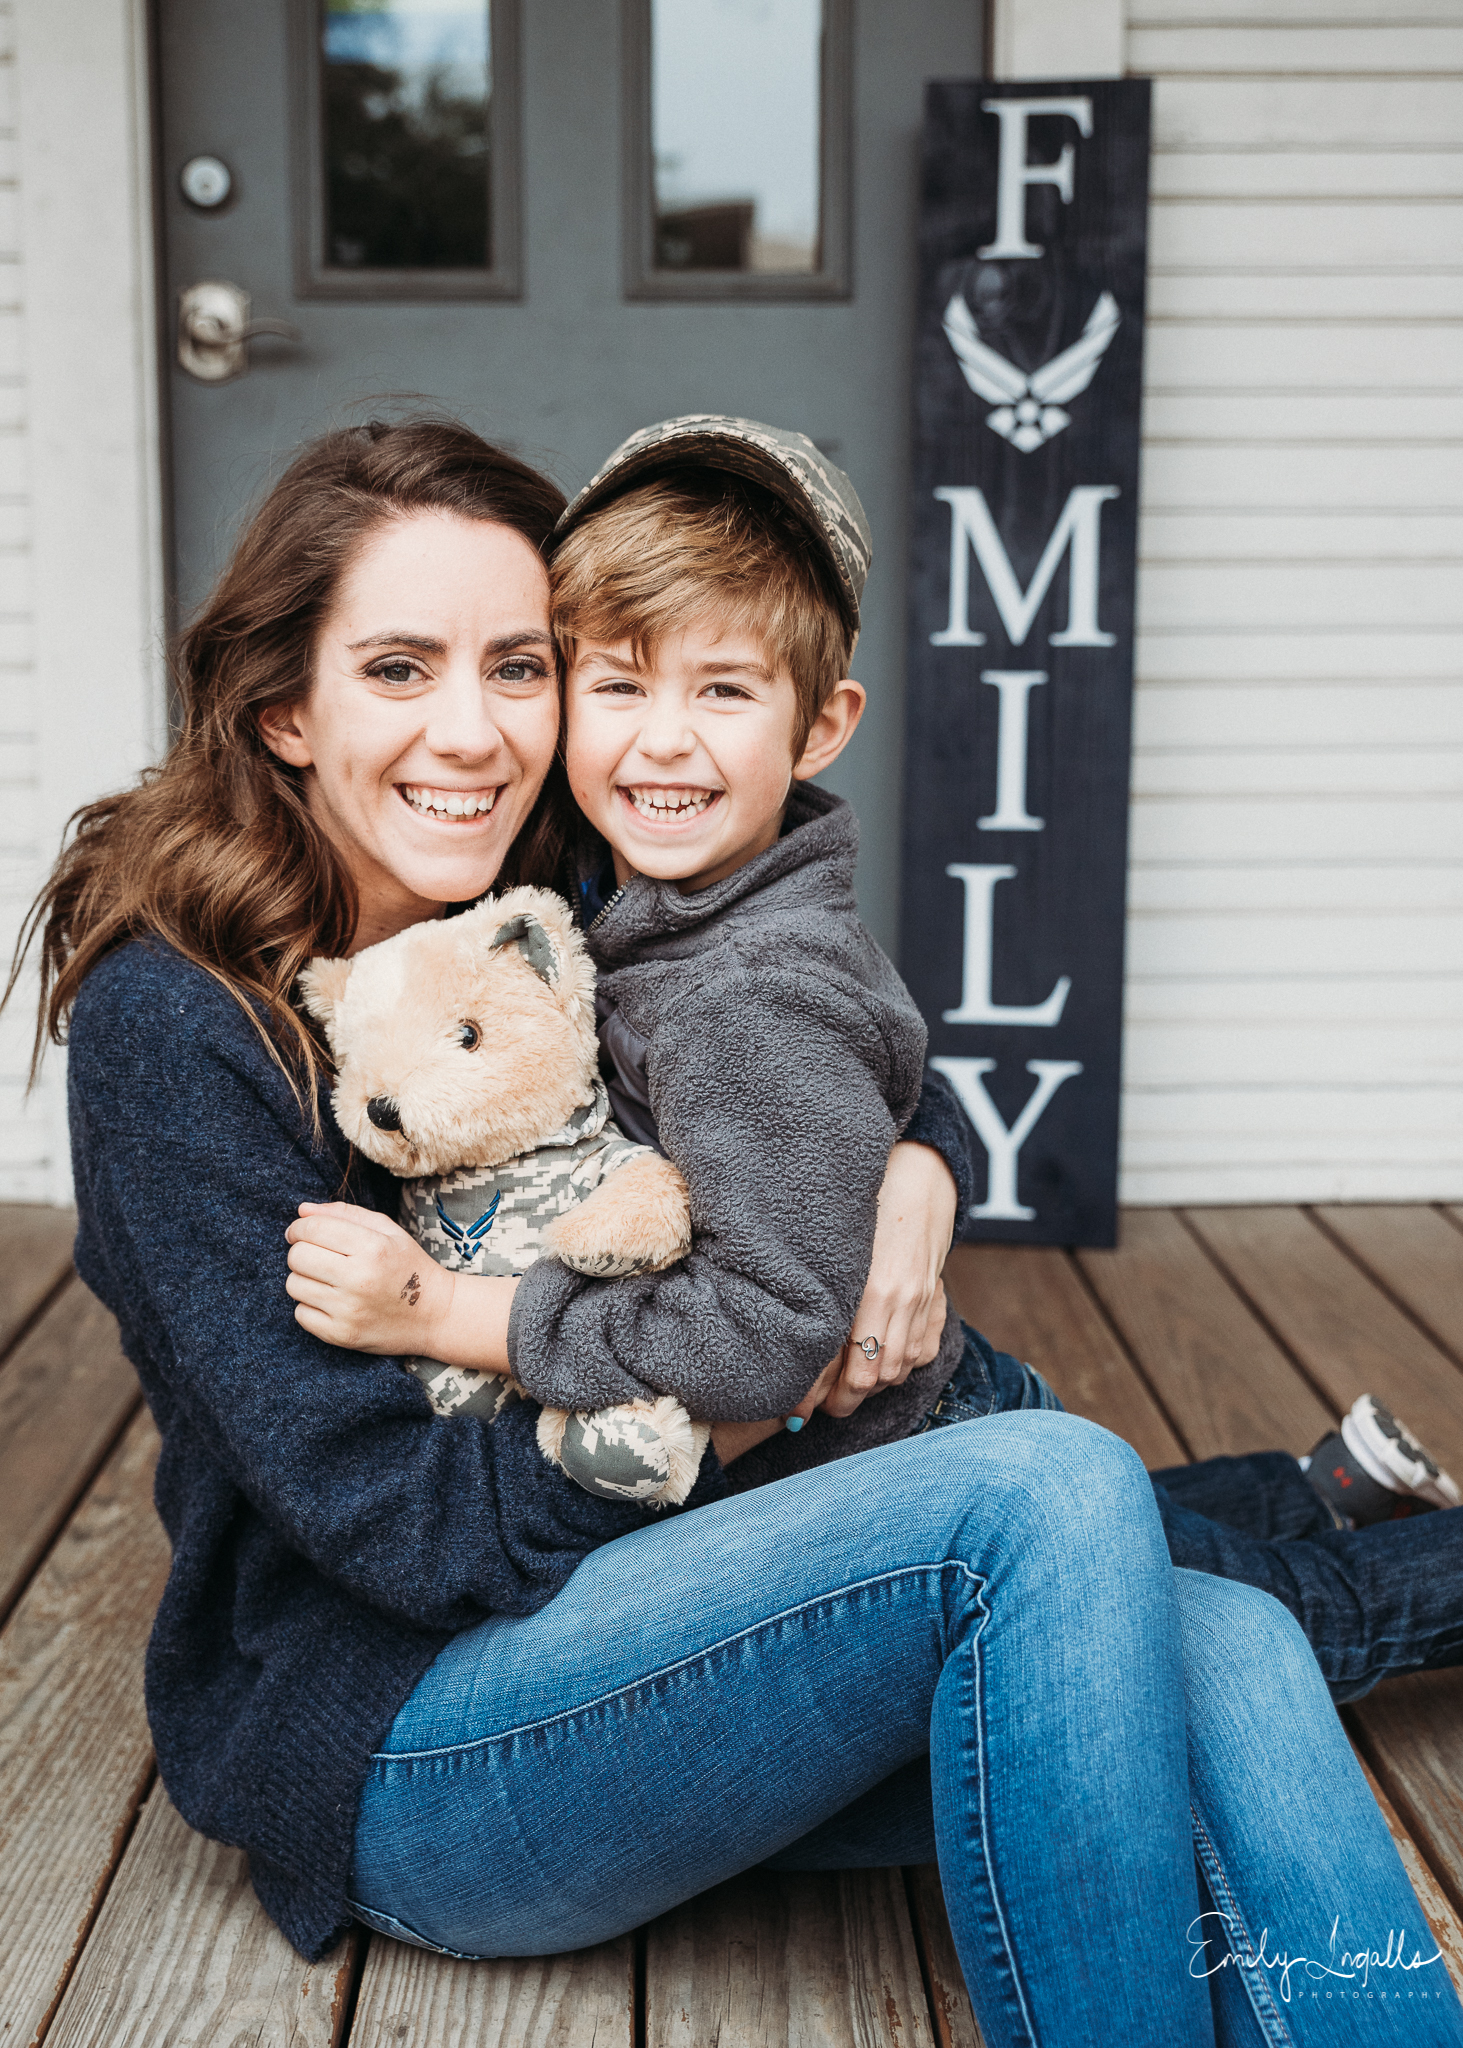 Mother's Day Gifts-Family Photographer_Round Rock Photographer_Emily Ingalls Photography_Austin Photographer_Pflugerville Photographer_Georgetown Photographer-6.jpg